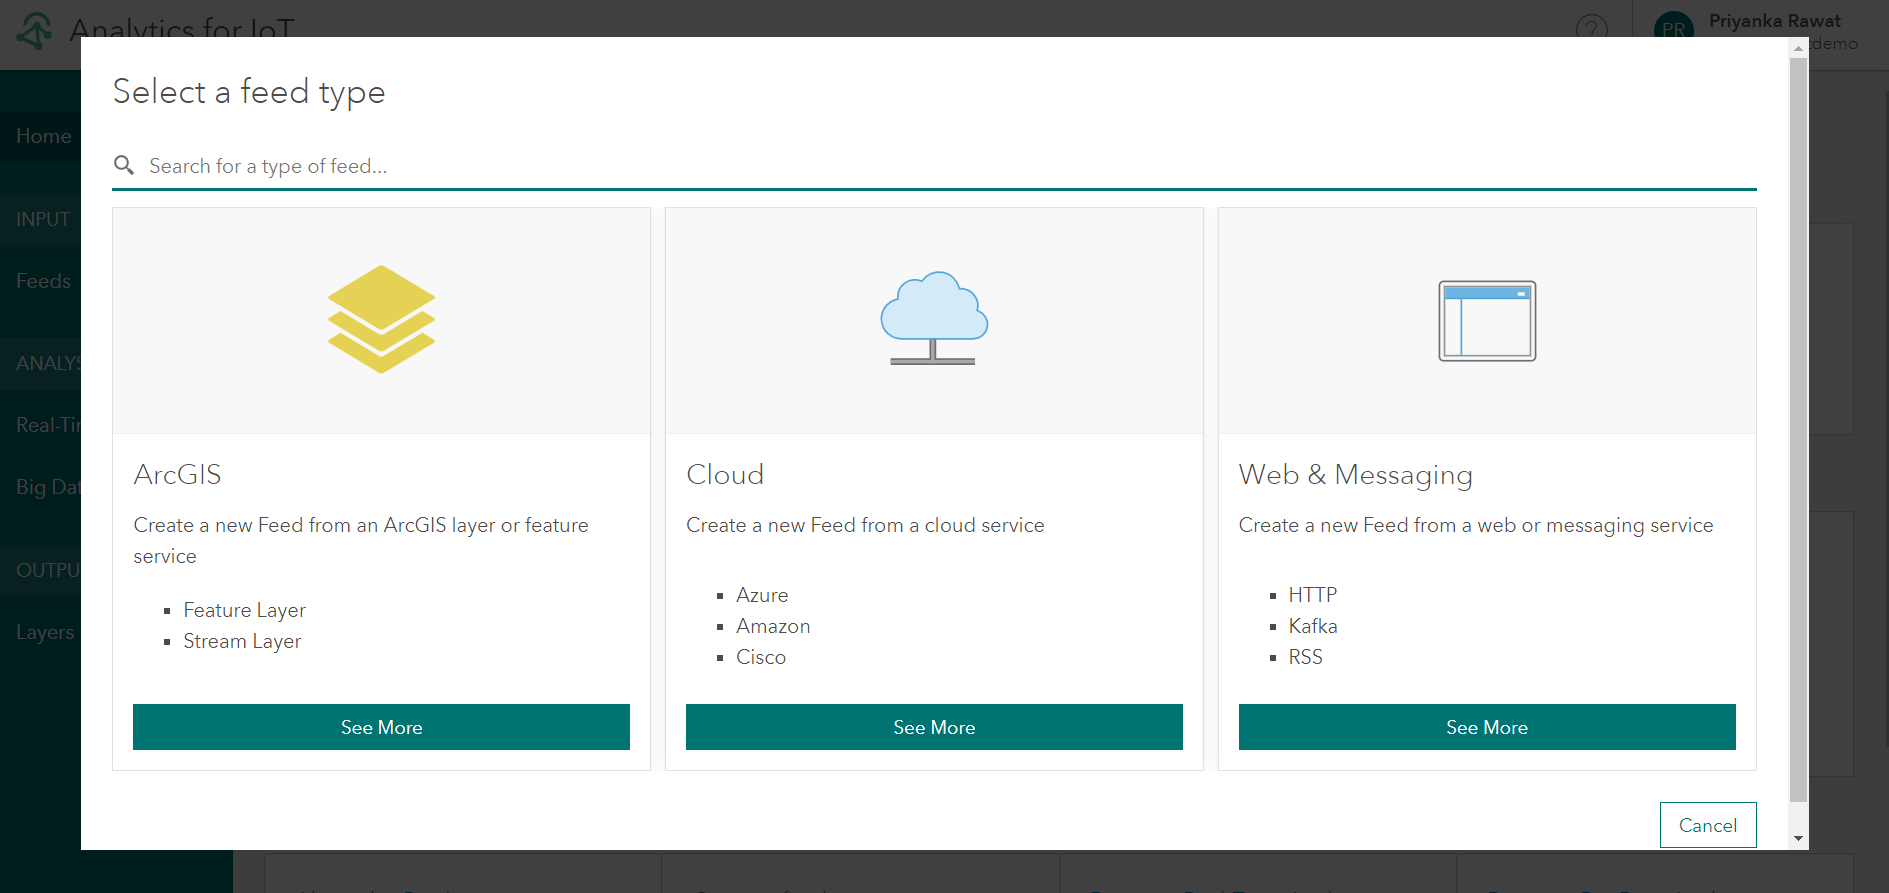 In the feed configuration wizard, you can choose to bring in data from three distinct categories: ArcGIS layers, cloud service providers, and message brokers.